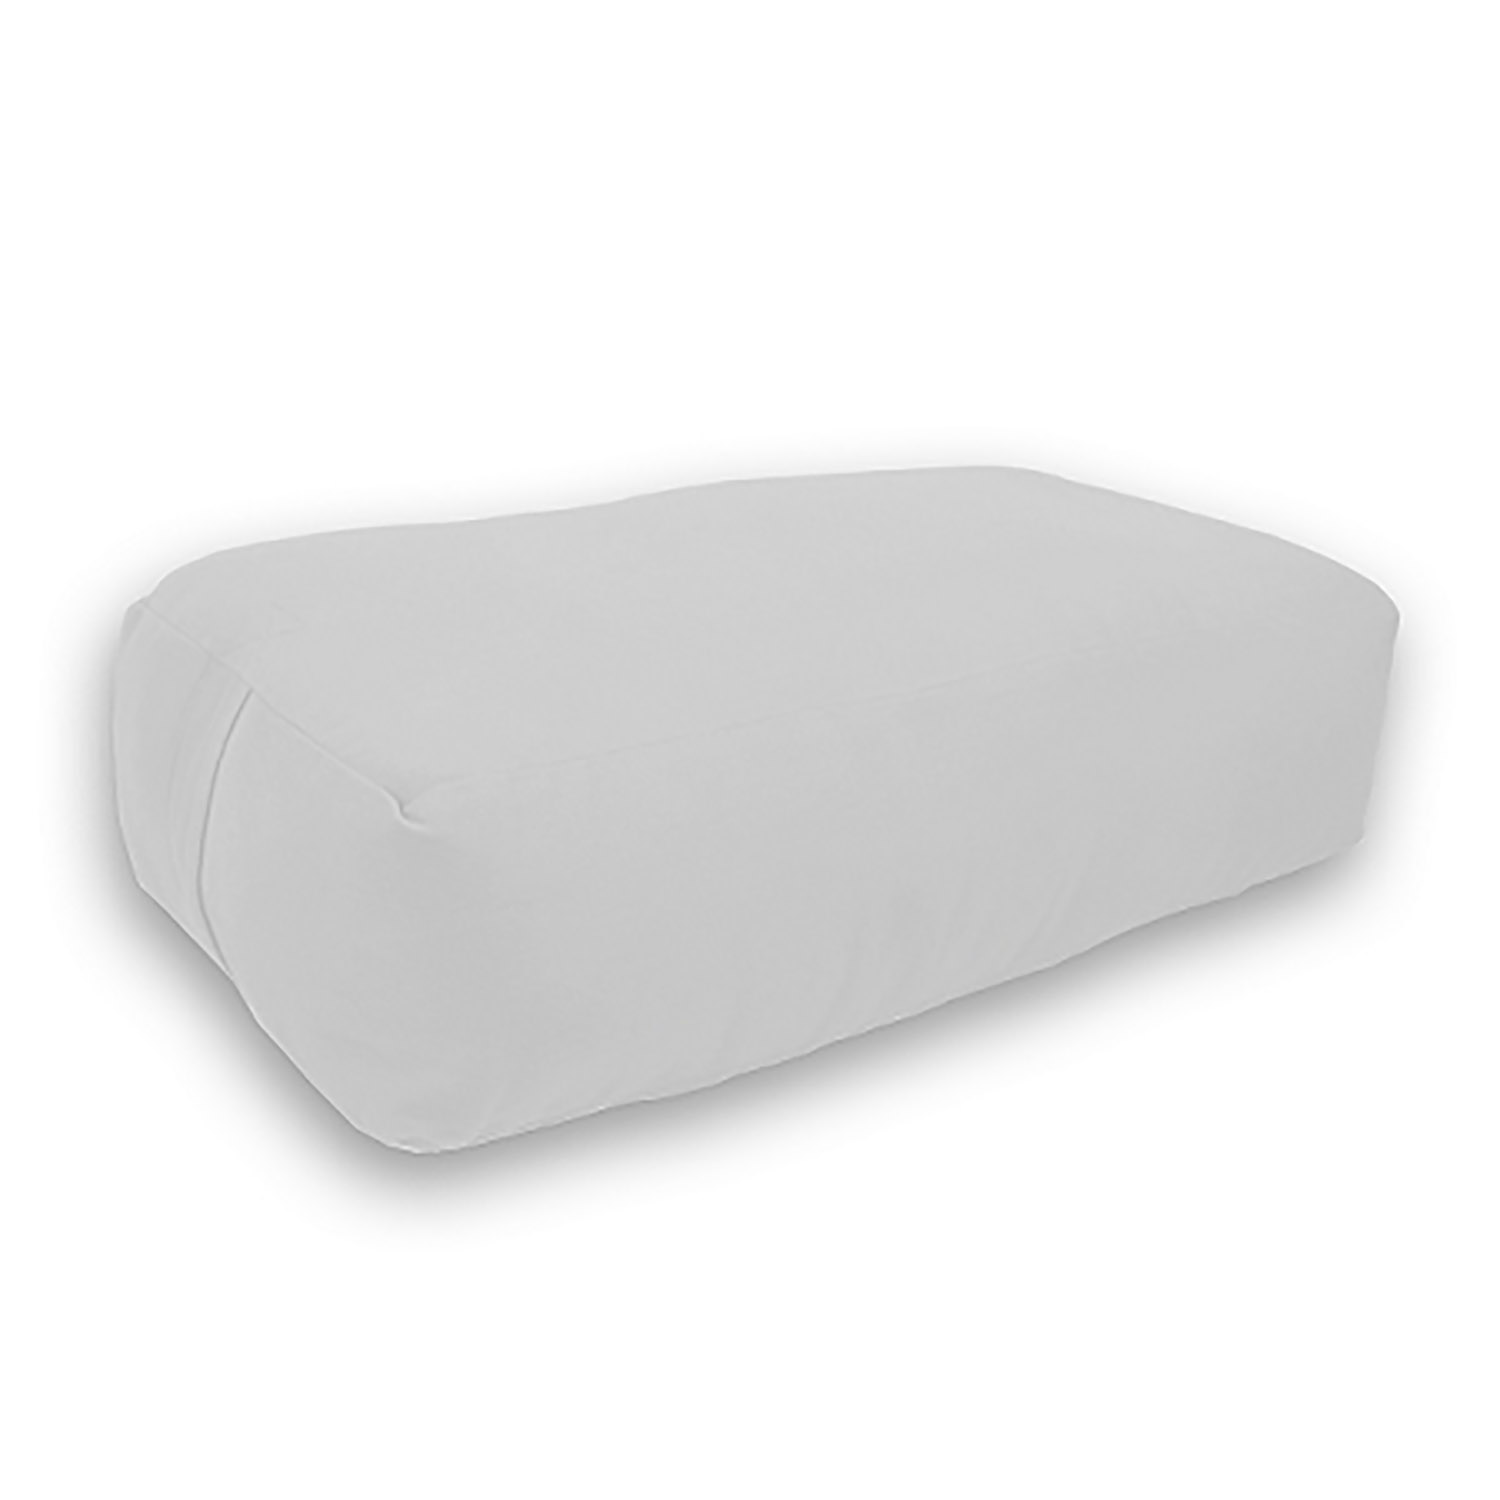 creates zafus inner eye meditation and by flat pillow bolster props zabuton pillows supplies unique space pin bolsters yoga colorful mosaic